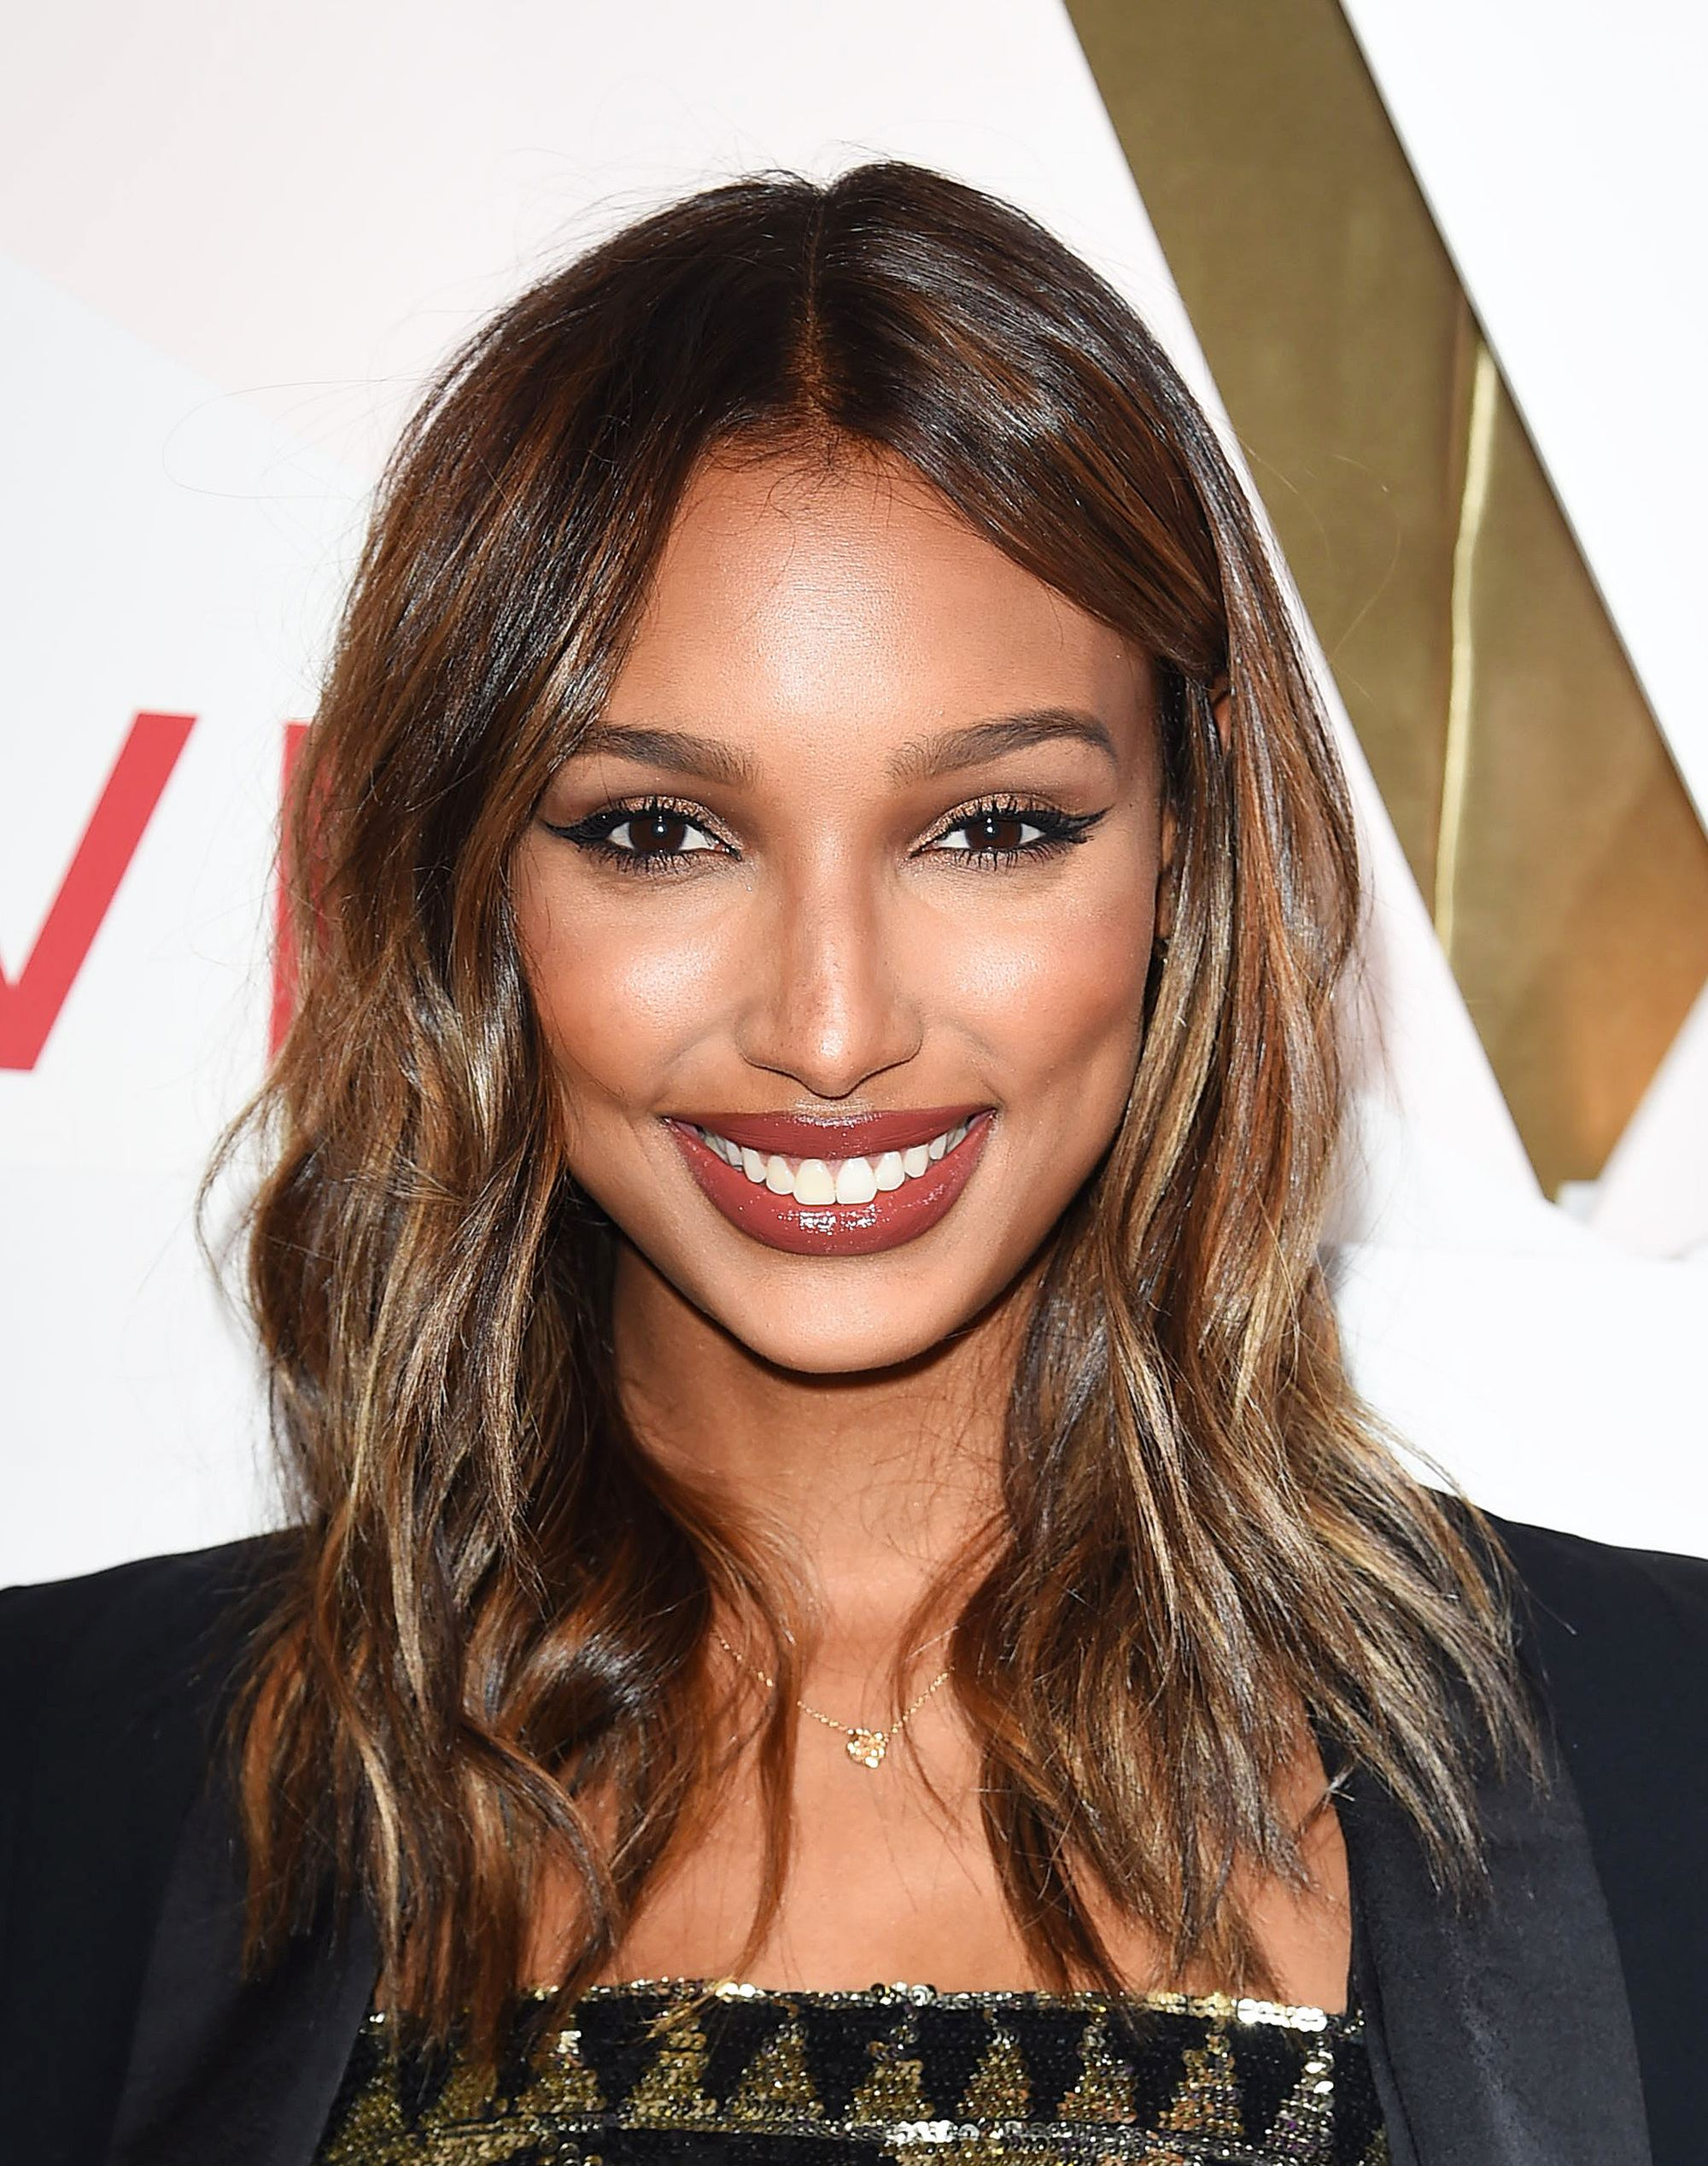 Jasmine Tookes with shoulder-length dark hair with caramel highlights in it on the red carpet